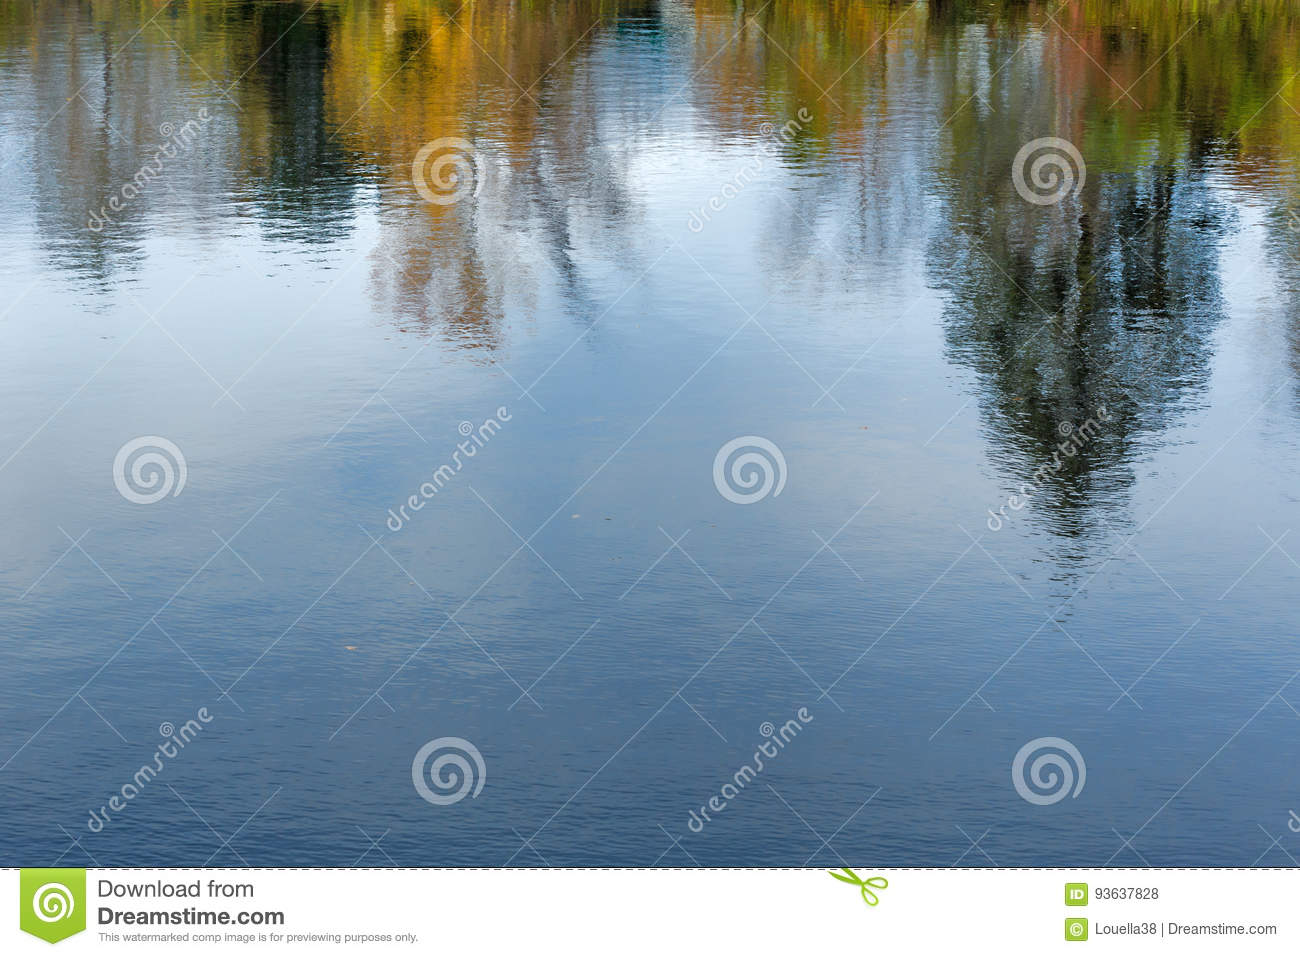 Reflection of fall leaves on rippling water